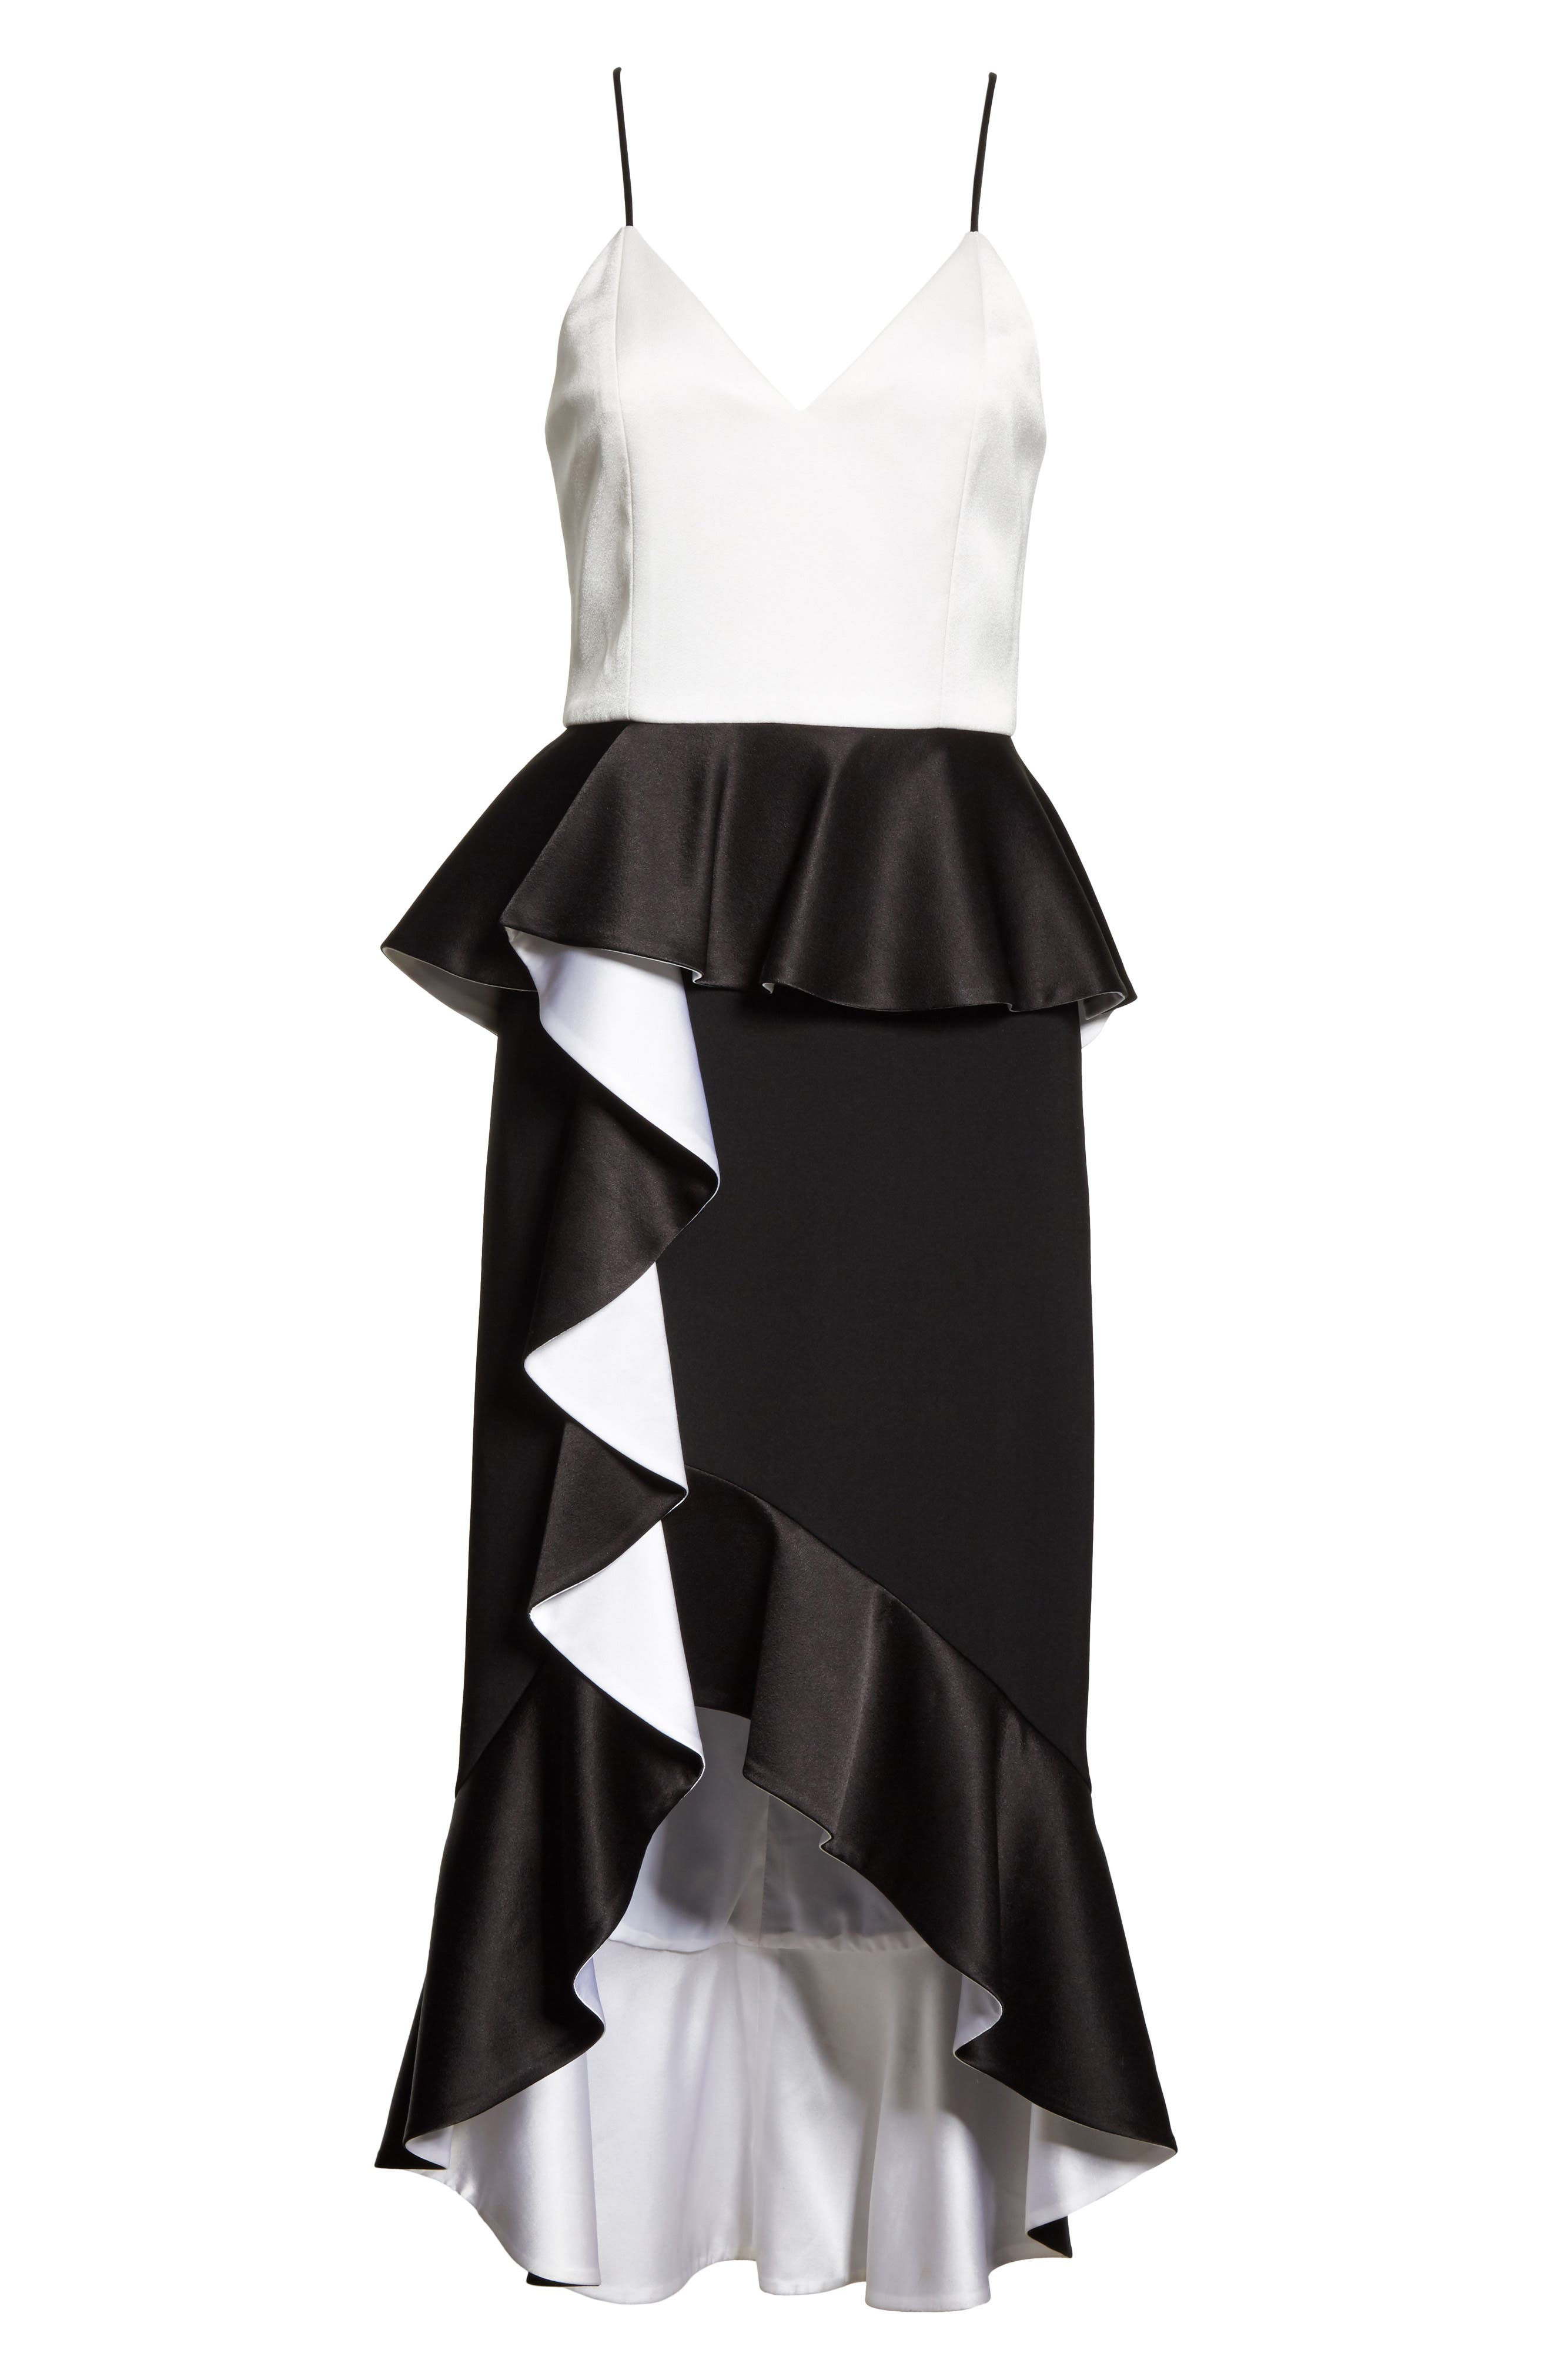 Oriana Ruffled High/Low Dress,                             Alternate thumbnail 6, color,                             Black/ Off White